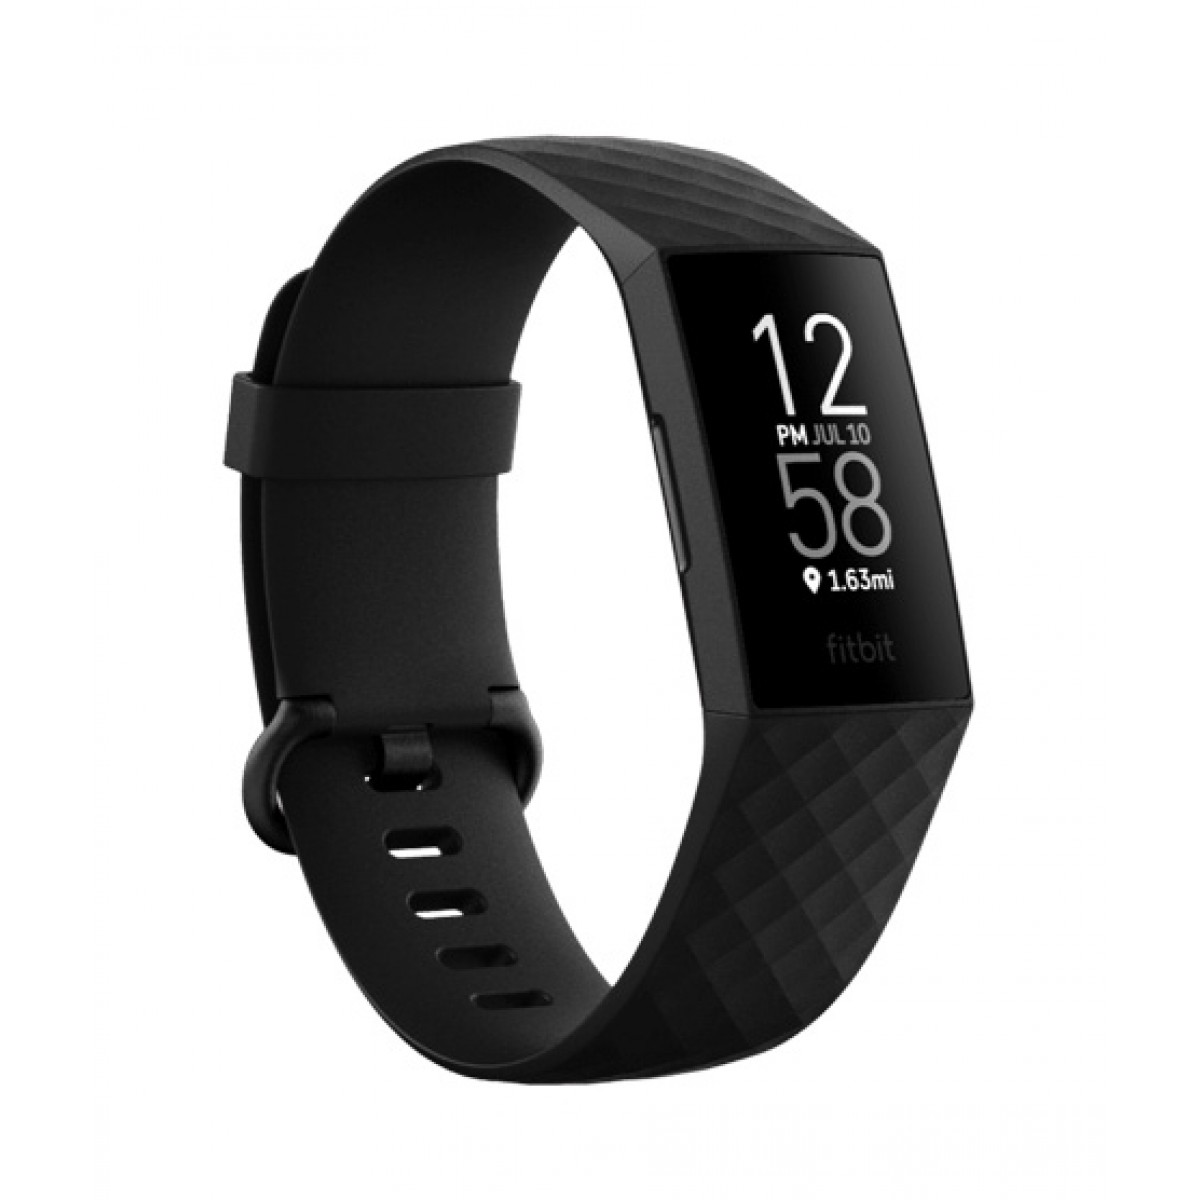 Fitbit Charge 4 Fitness Tracker Black - Small/Large Bands Included